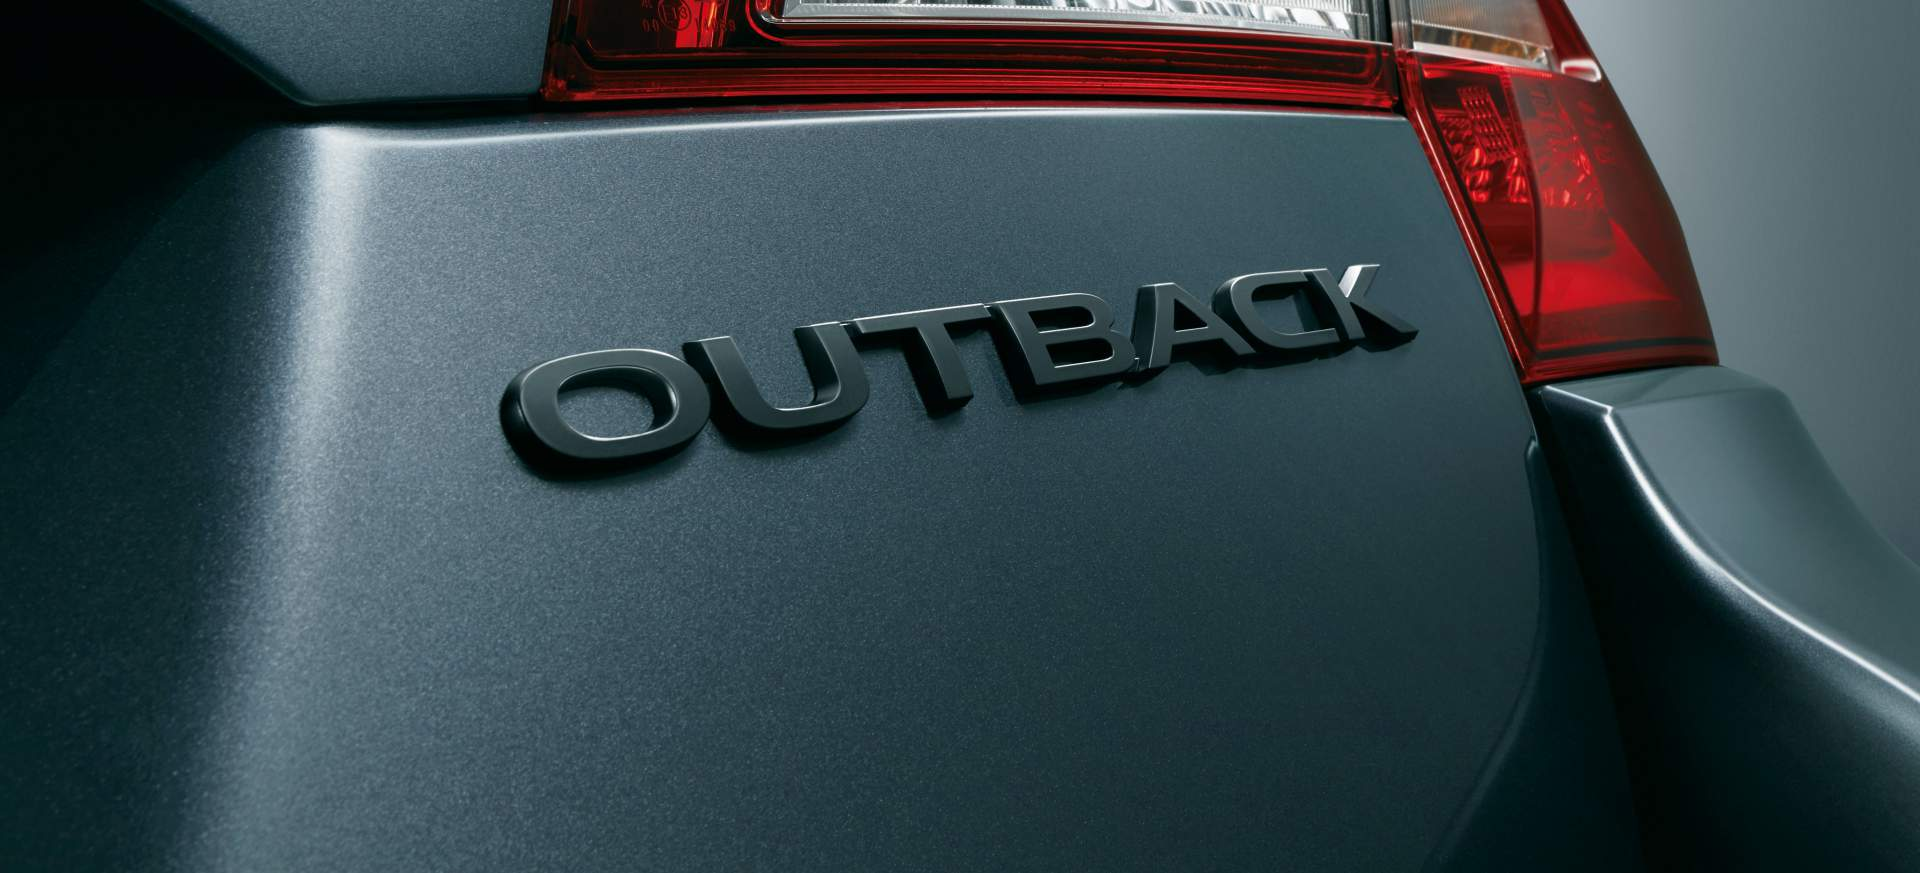 subaru-outback-x-break-dac-biet-12.jpeg